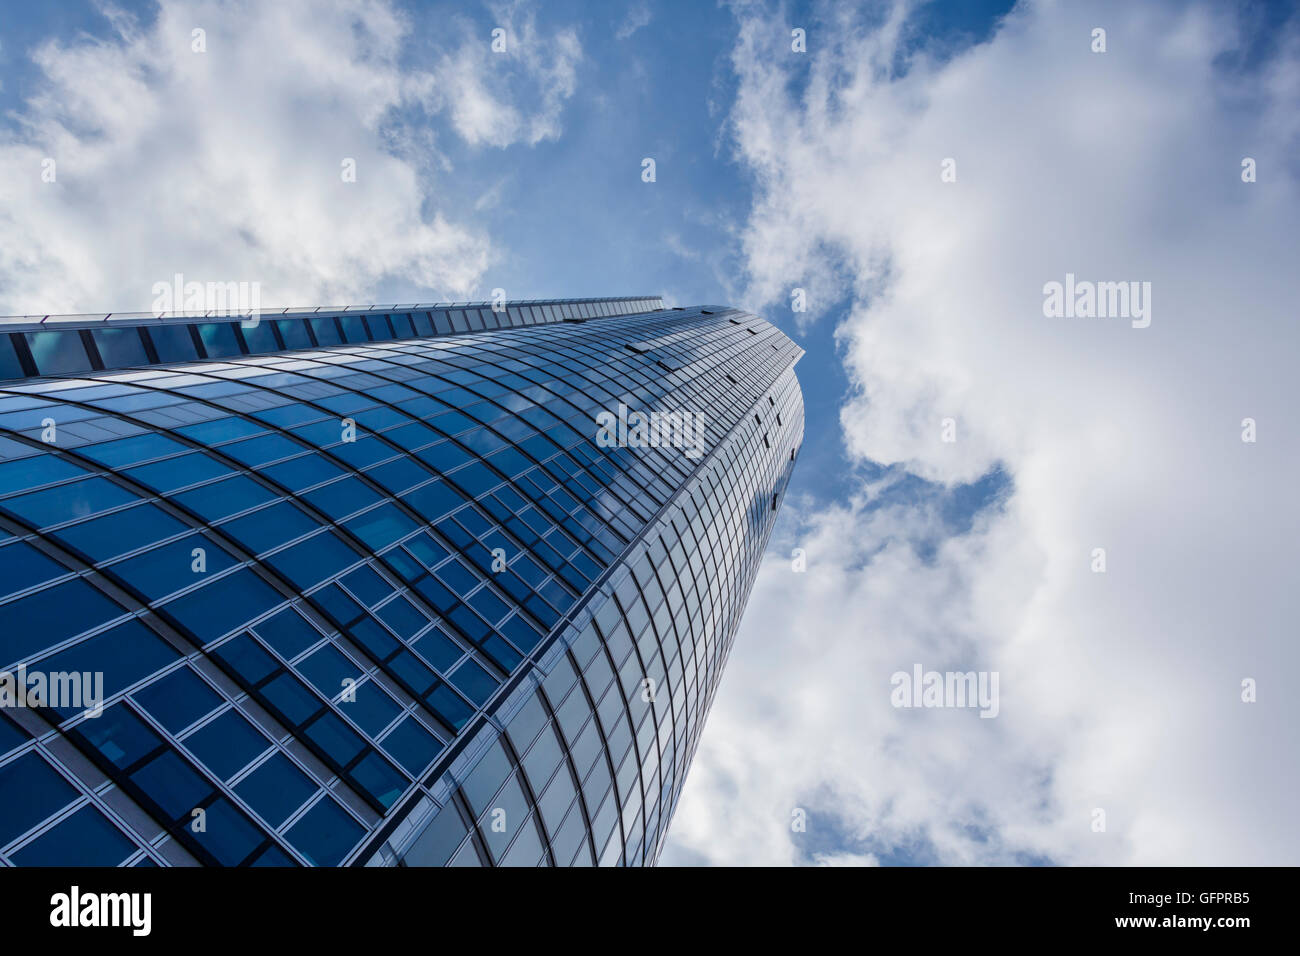 Looking up at a tall building with an cloudy sky above - Stock Image